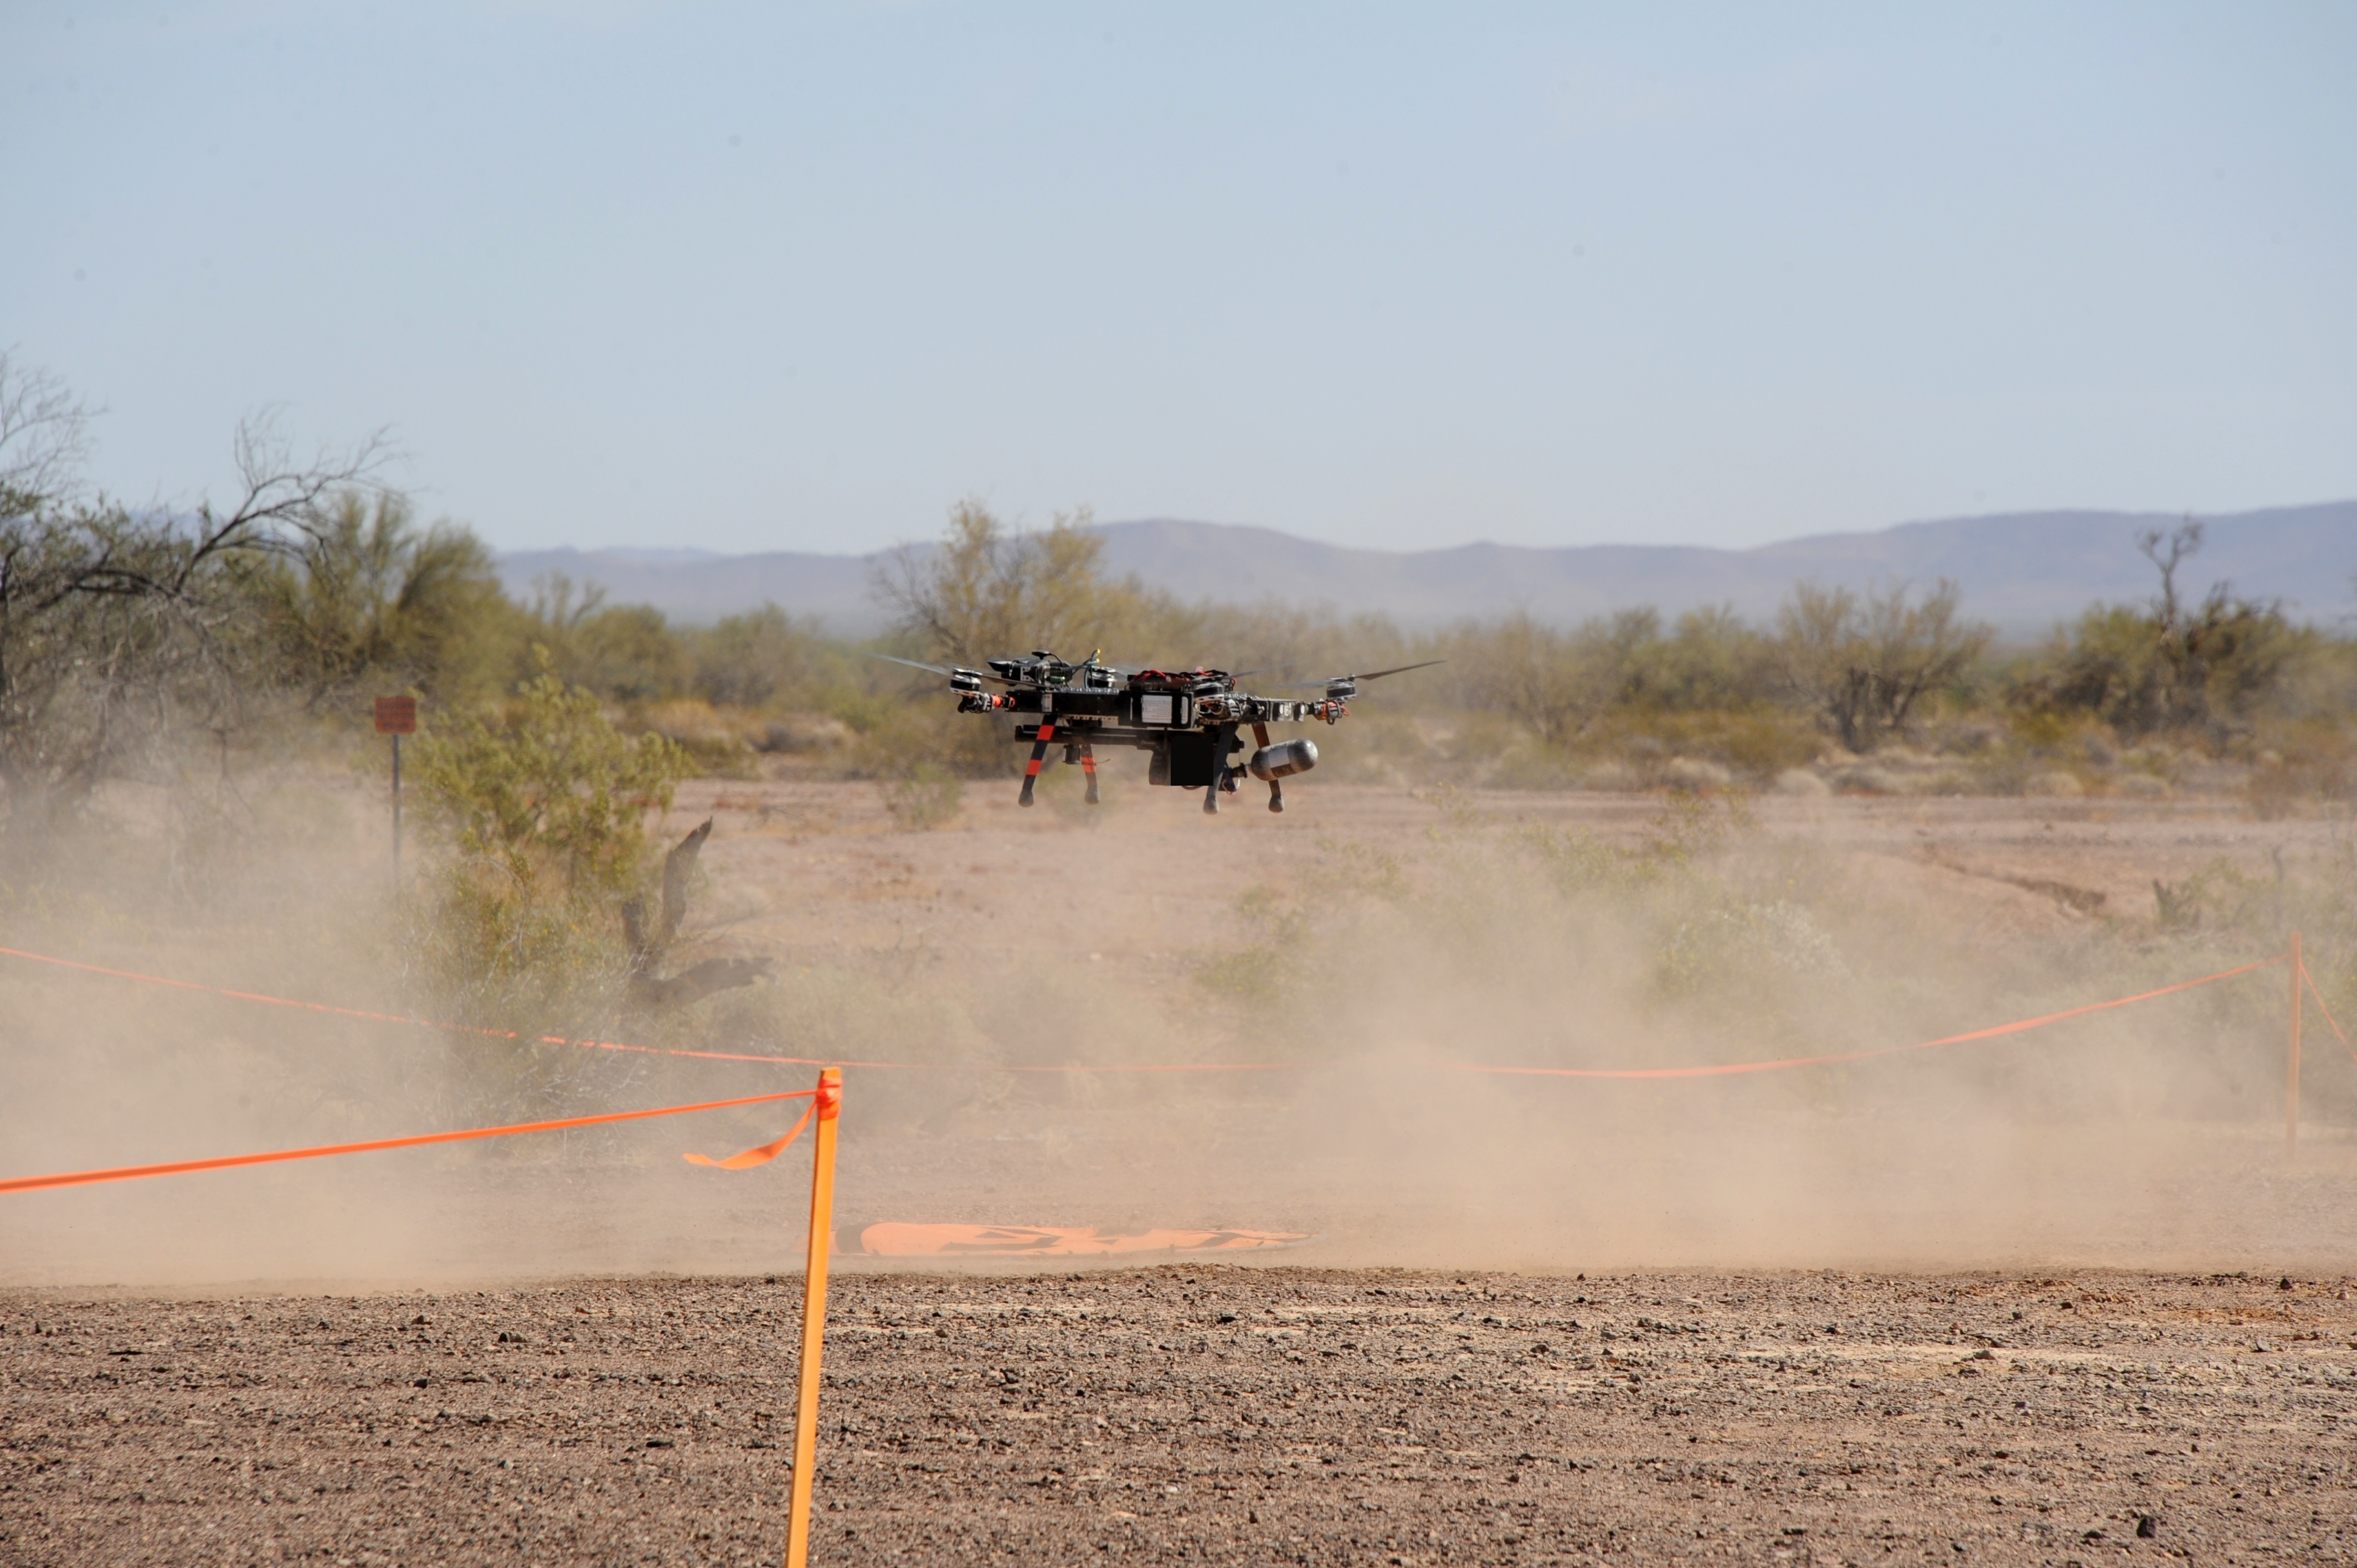 The Joint Counter-Small Unmanned Aircraft Systems Office and the U.S. Air Force evaluated three new systems capable of defeating small drone threats in the Arizona desert. (Courtesy of Yuma Proving Ground)